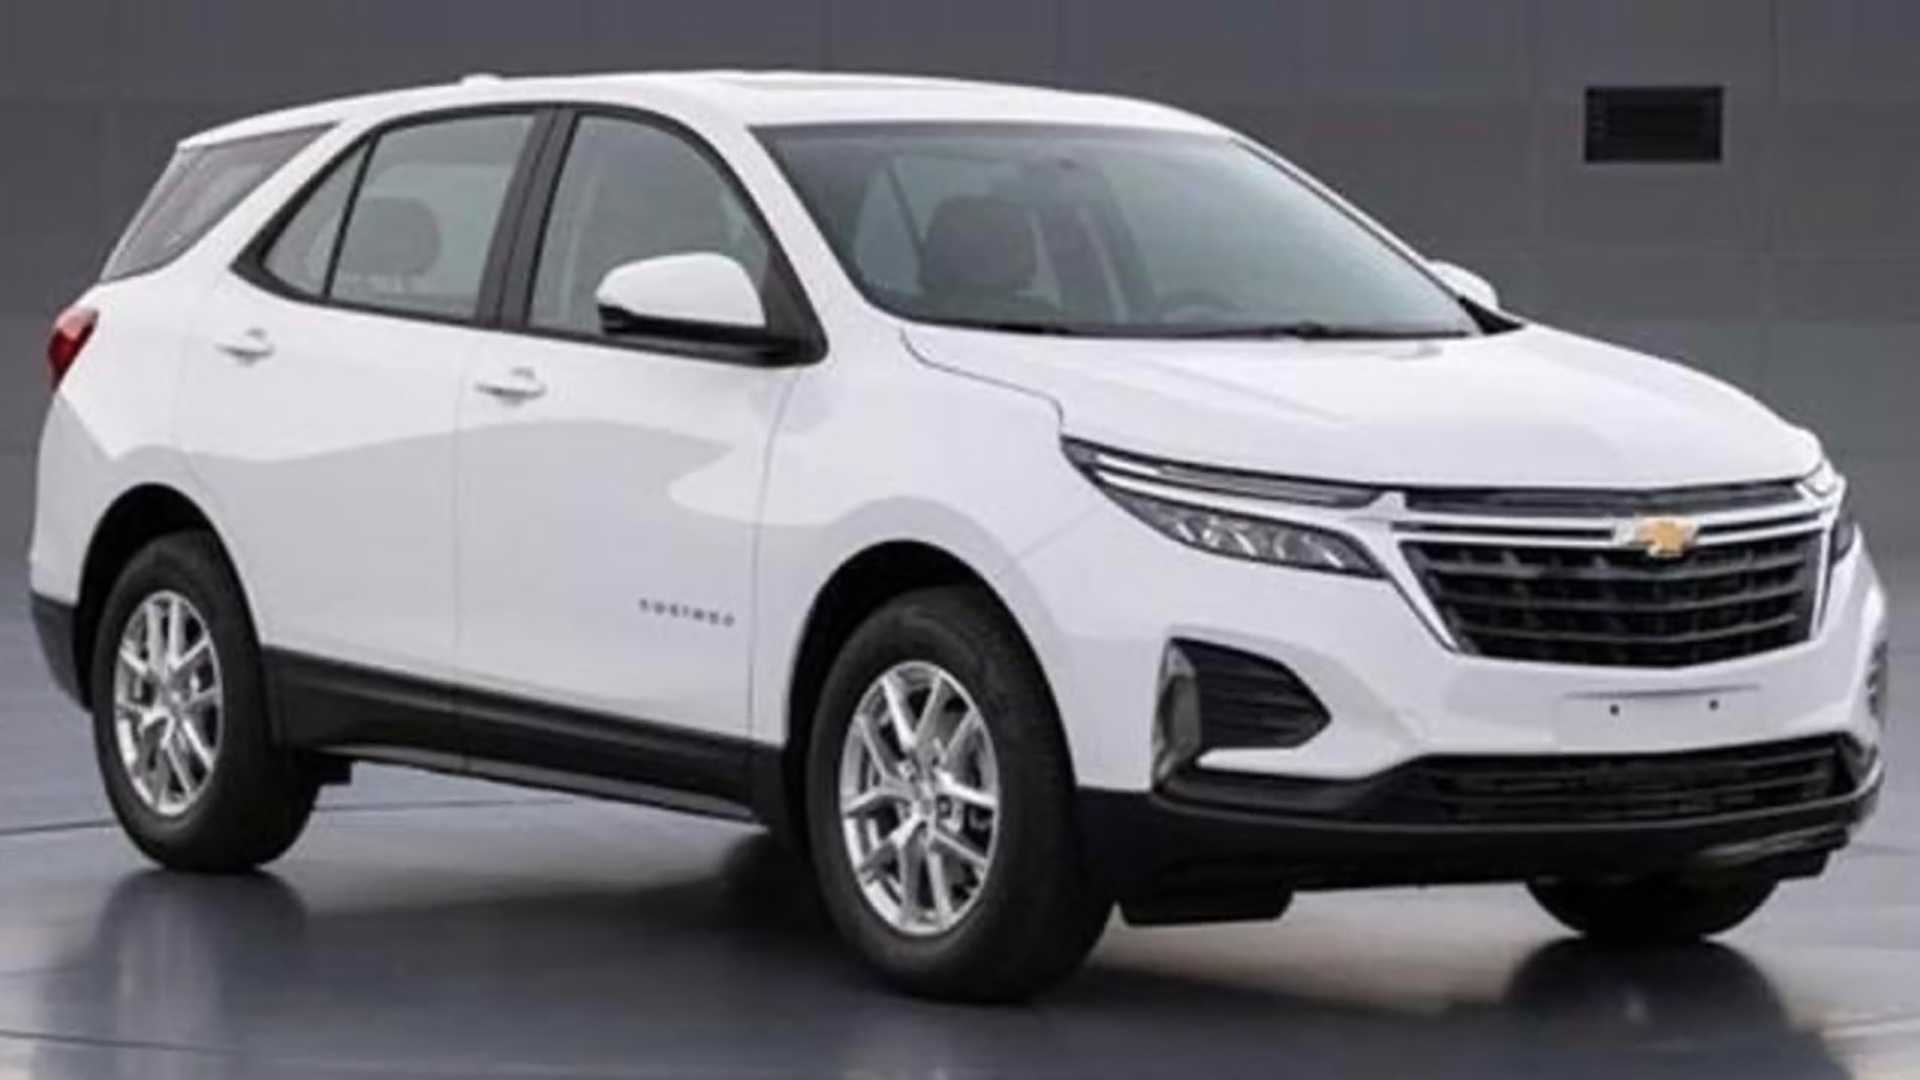 2021 Chevy Equinox Facelift Photos Allegedly Leak